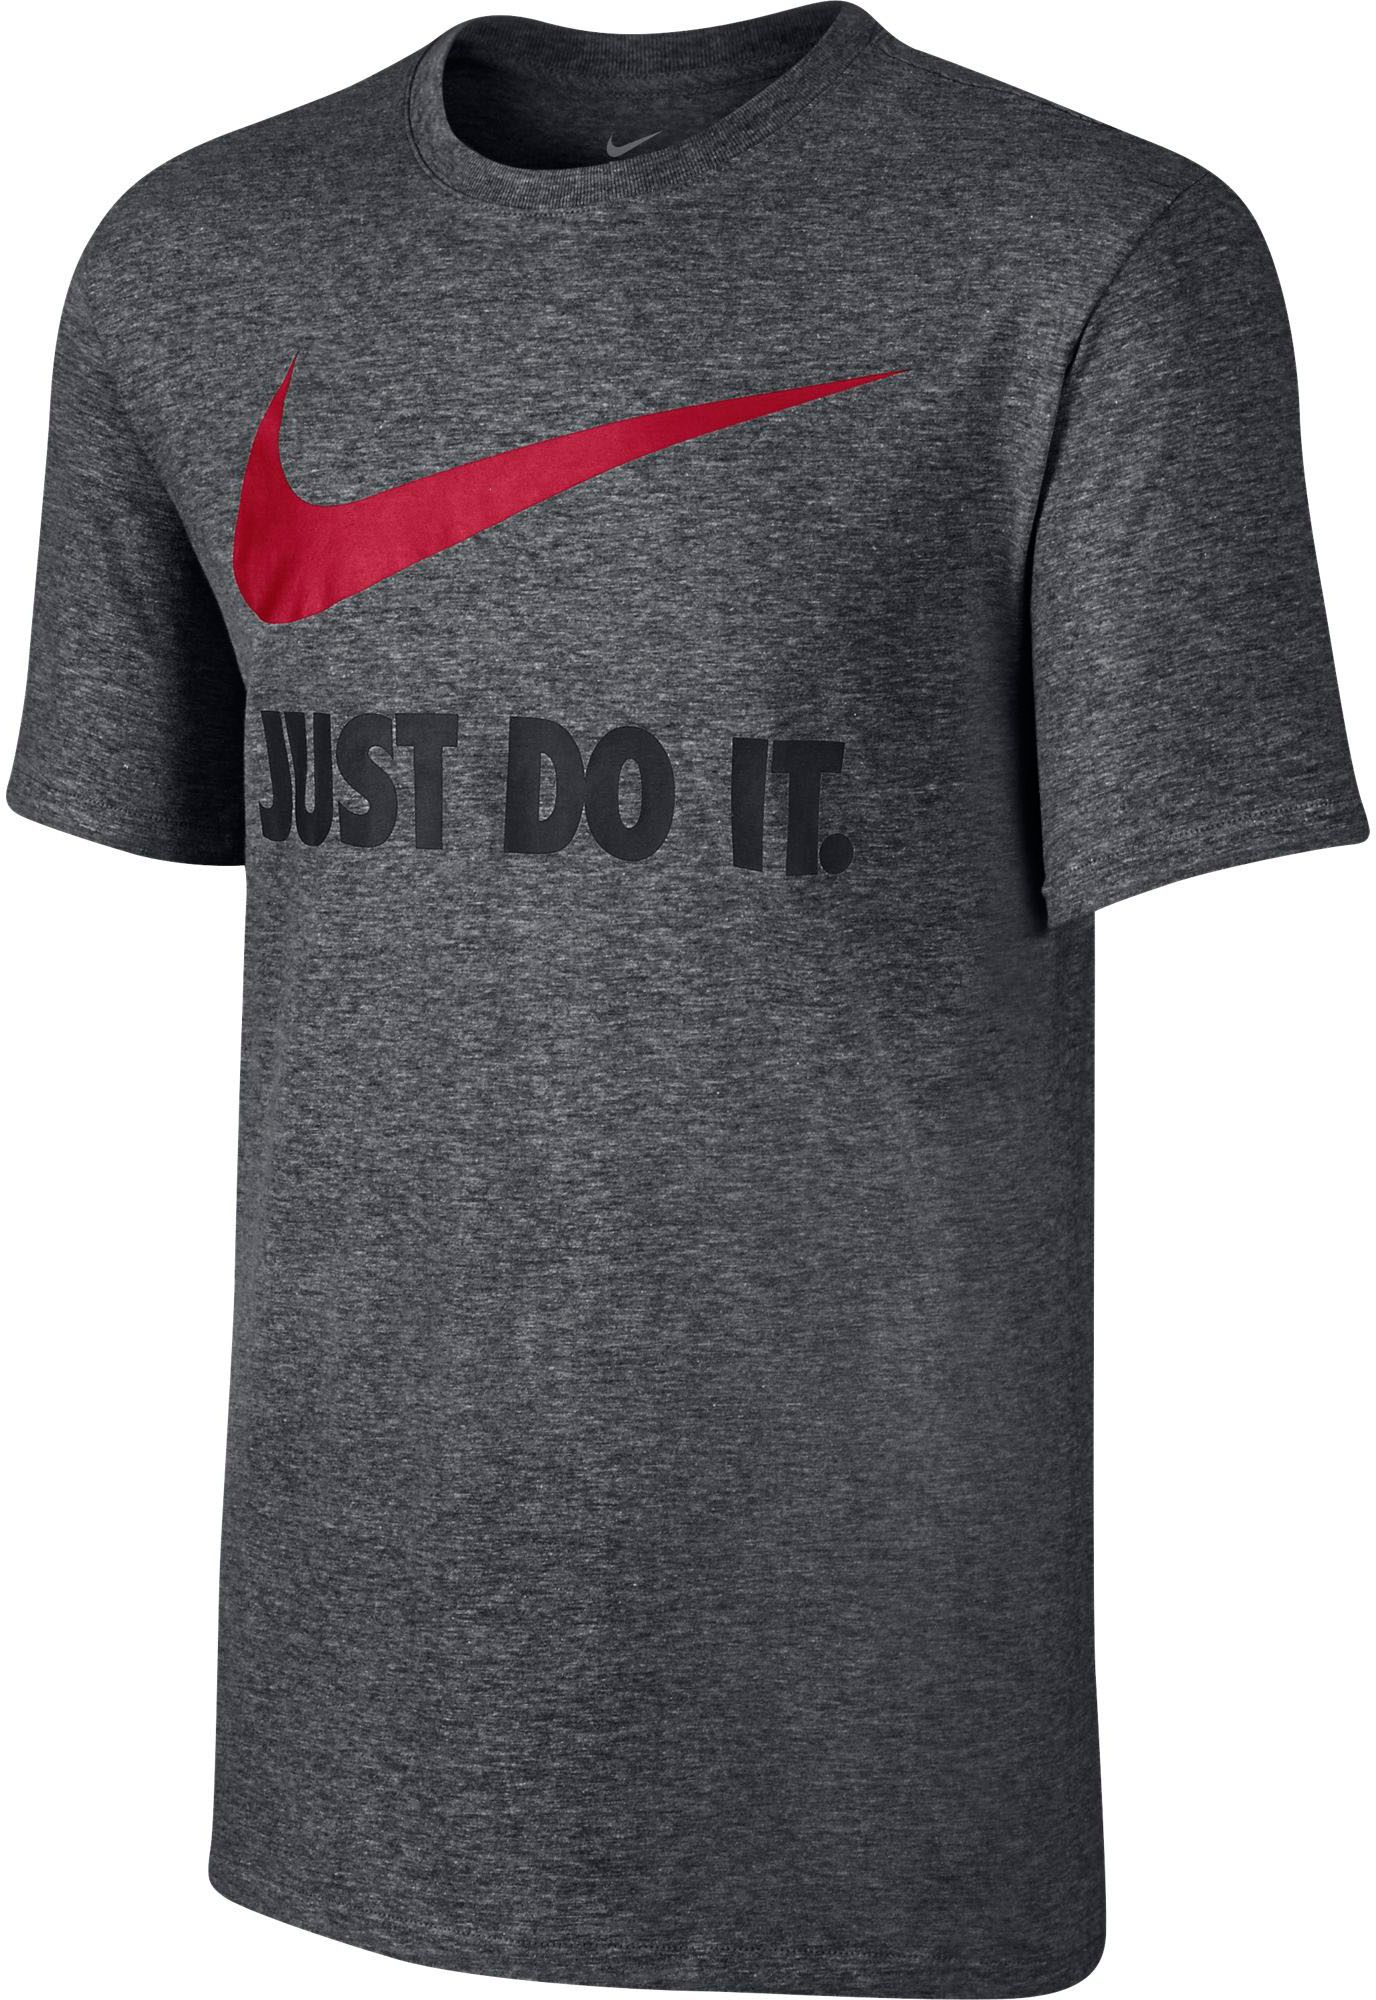 graphic t shirts nike menu0027s new just do it graphic t-shirt DBCGLKT